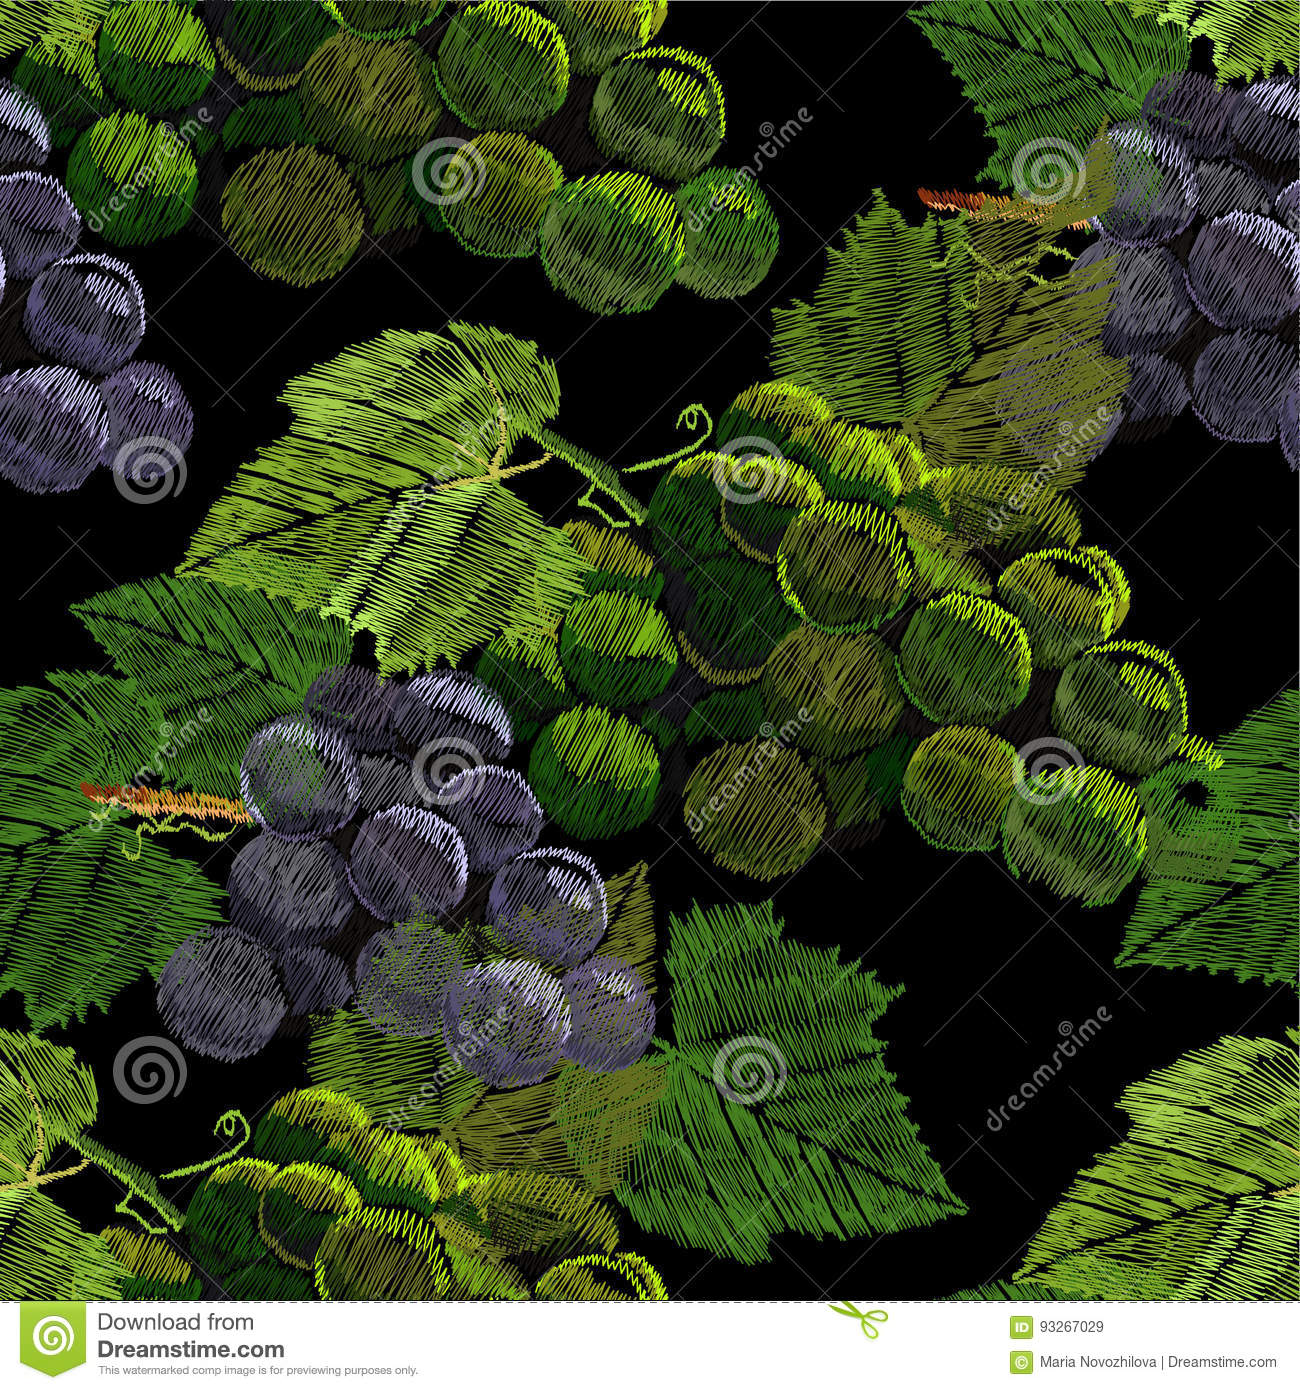 Illustration of Seamless pattern embroidery, needlework with a bunch, cluster of grapes with a green leaf. Necklace of